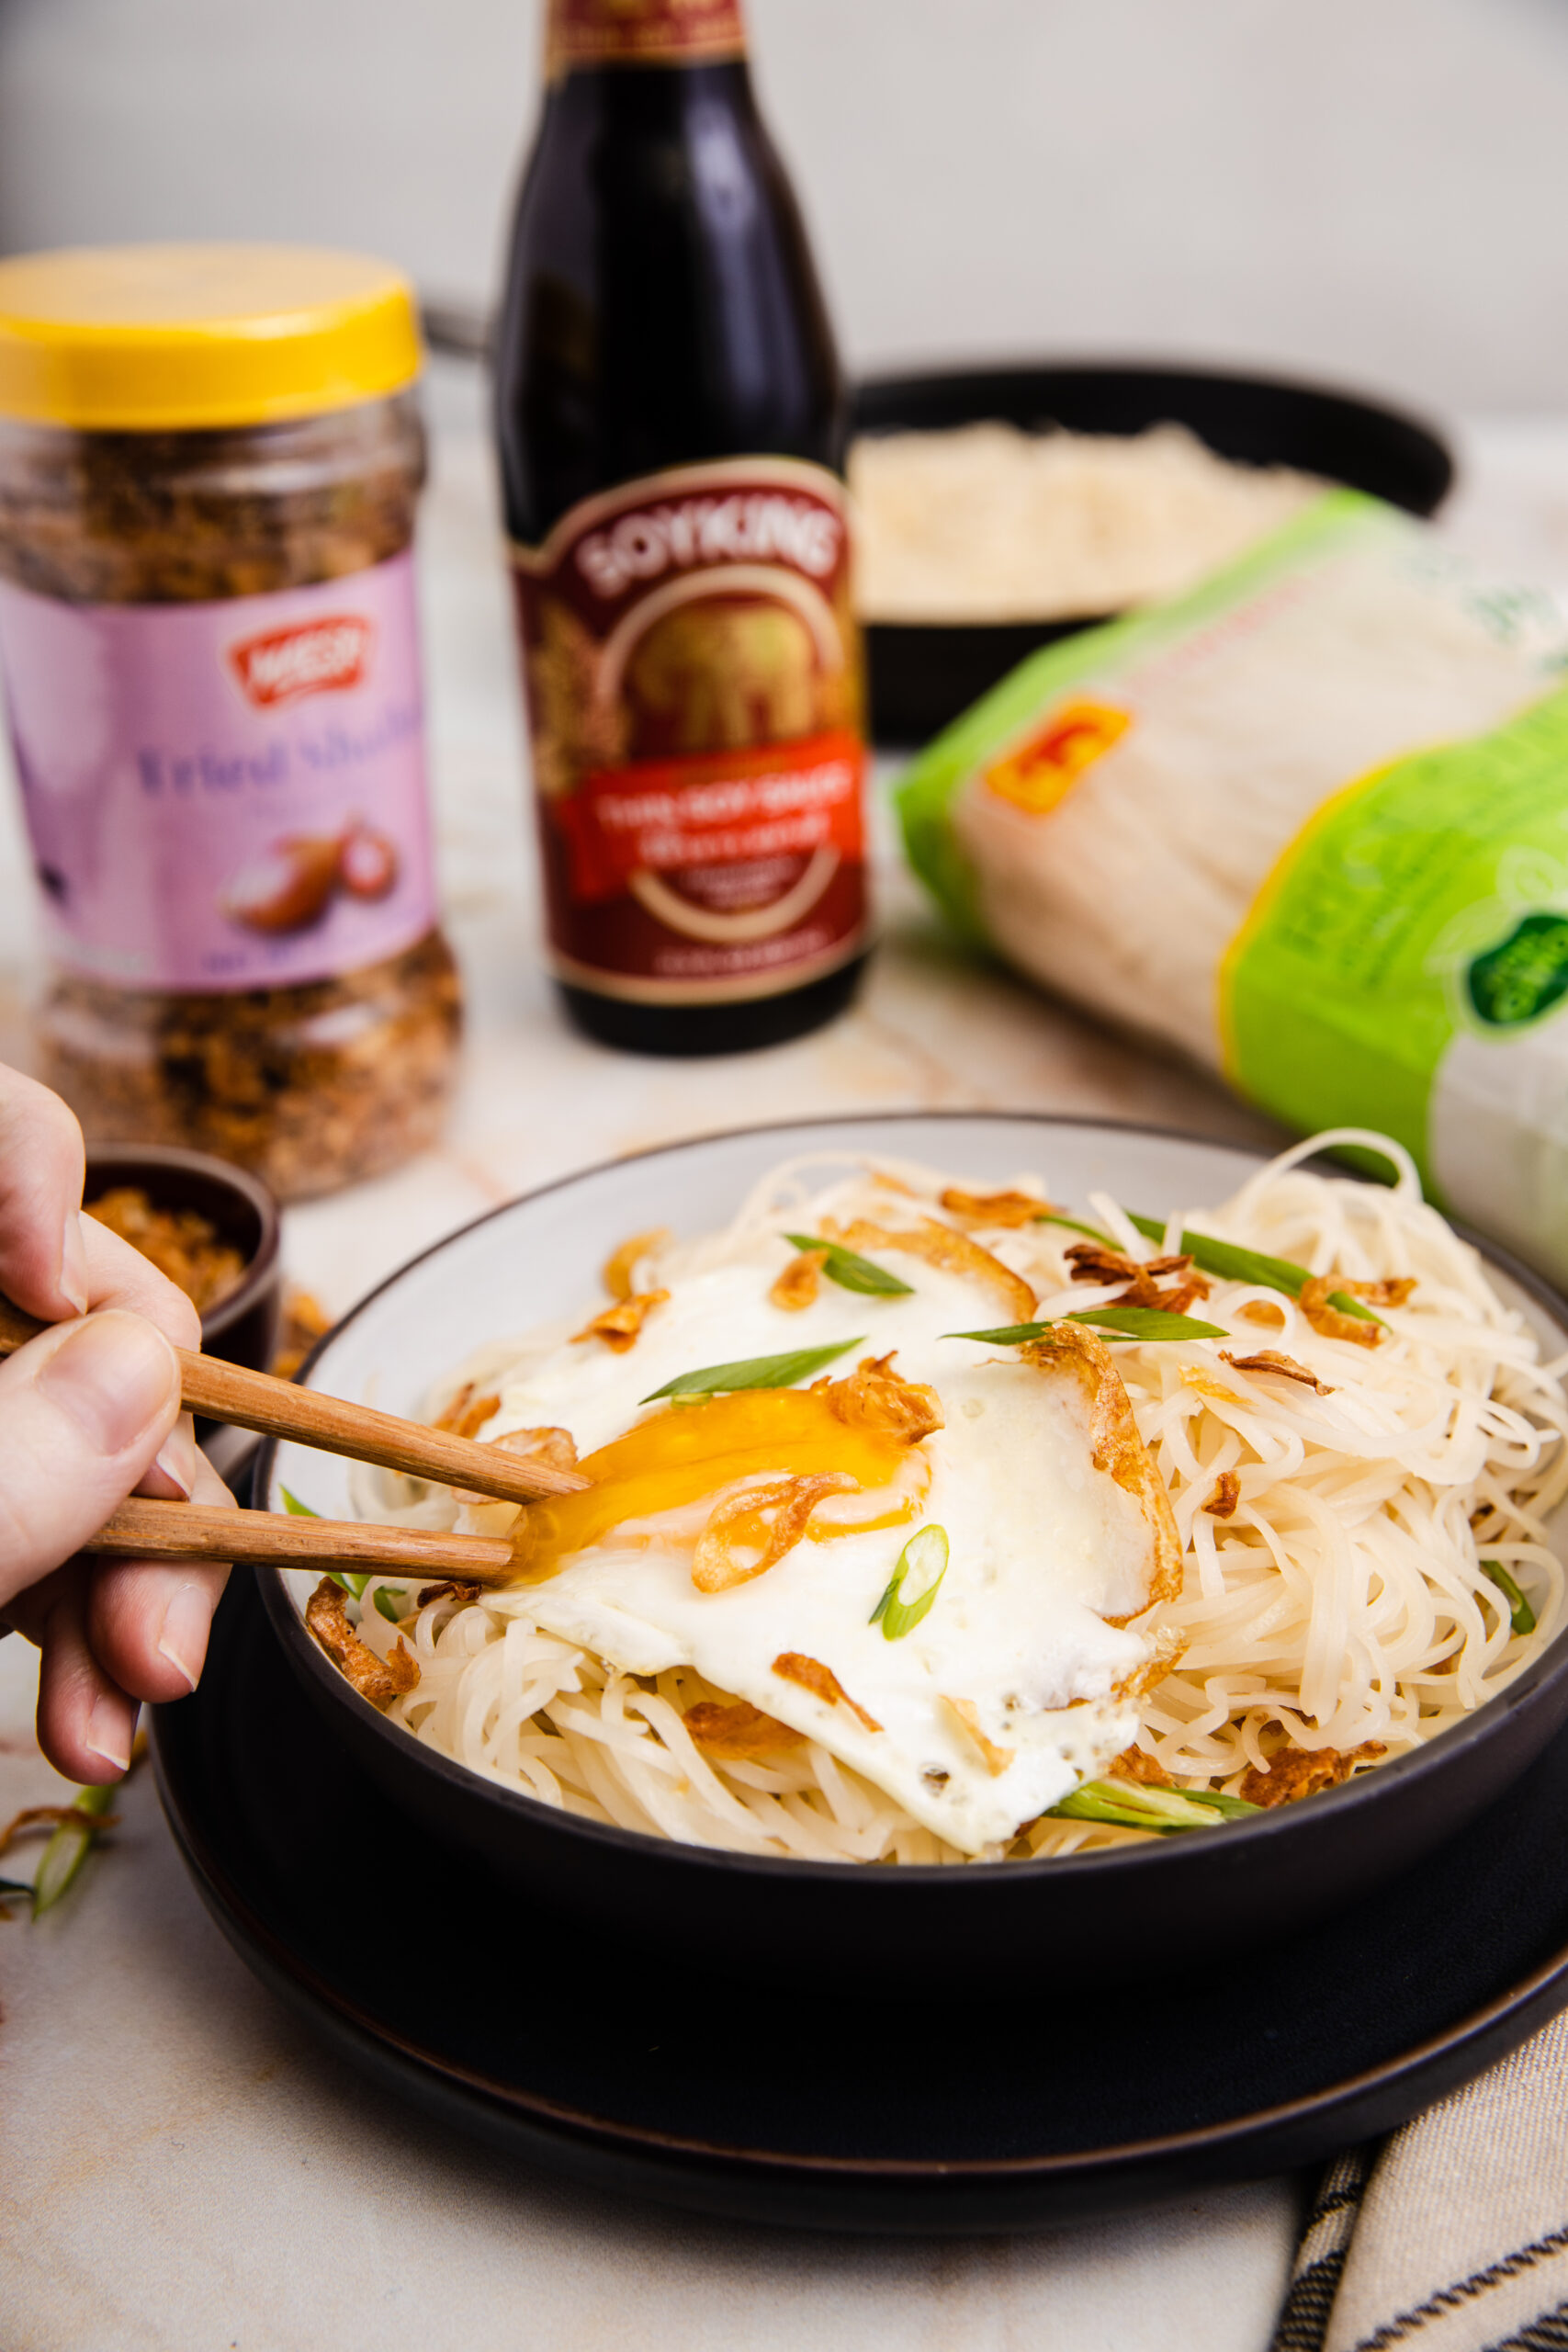 bowl of buttery soy sauce noodles surrounded by packaged noodles, chopsticks, and soy sauce